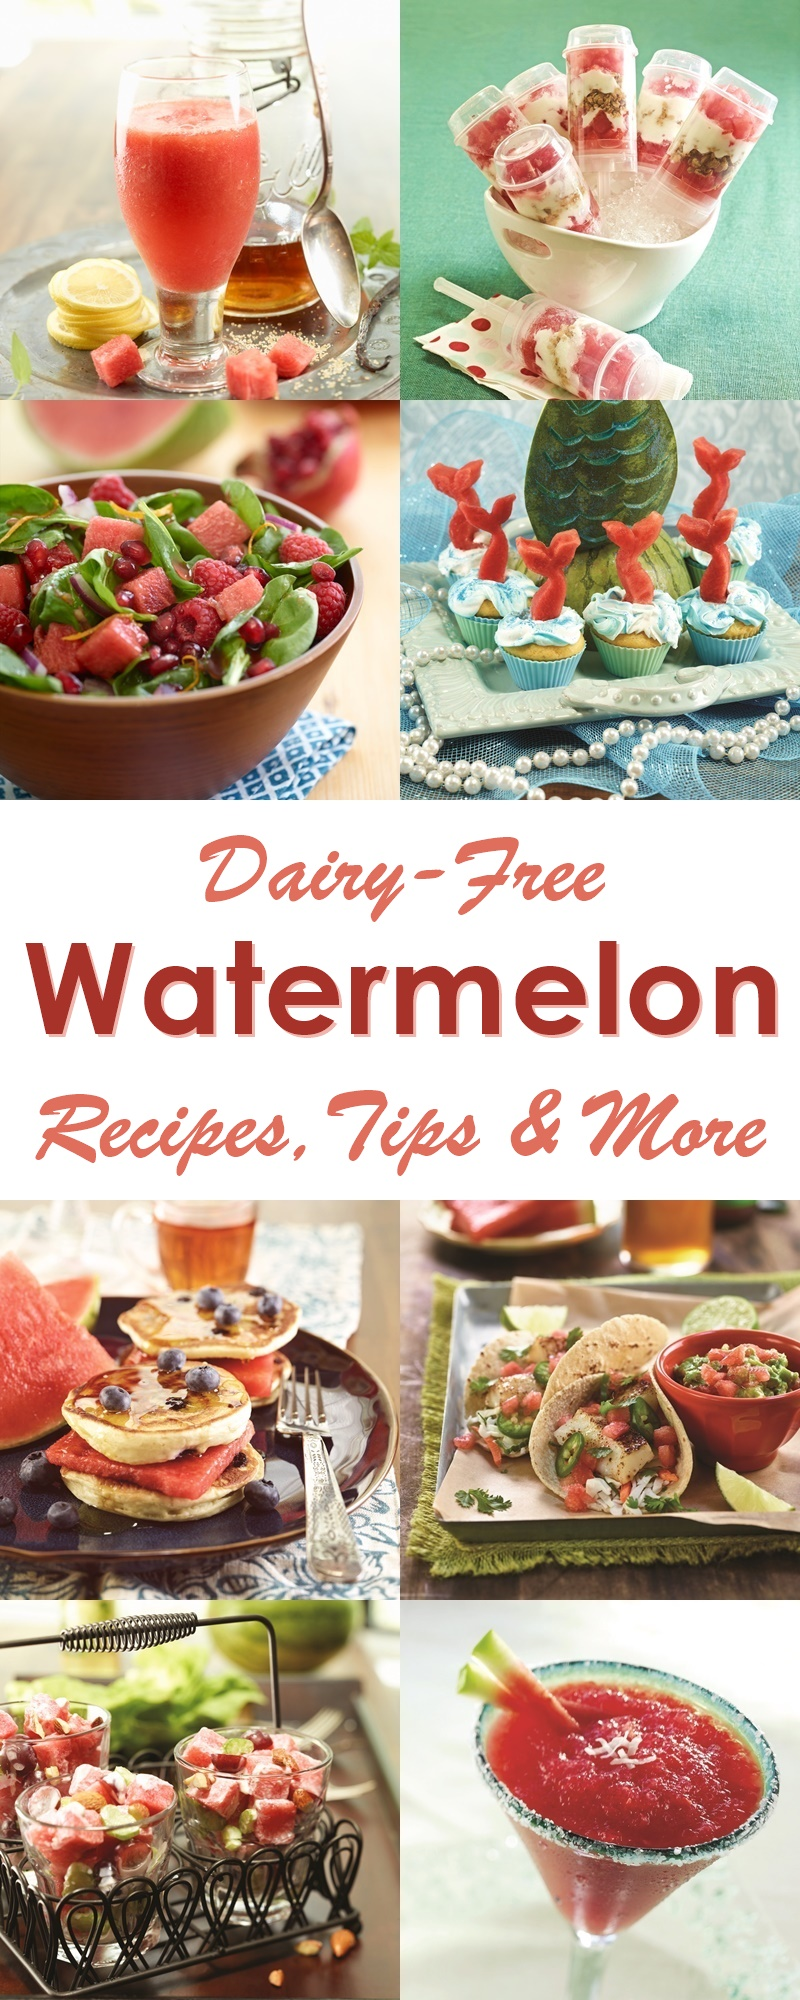 36 Dairy-Free Watermelon Recipes + Selection Tips, Fun Carving Ideas and the Latest Nutrition Notes on this Sweet Fruit